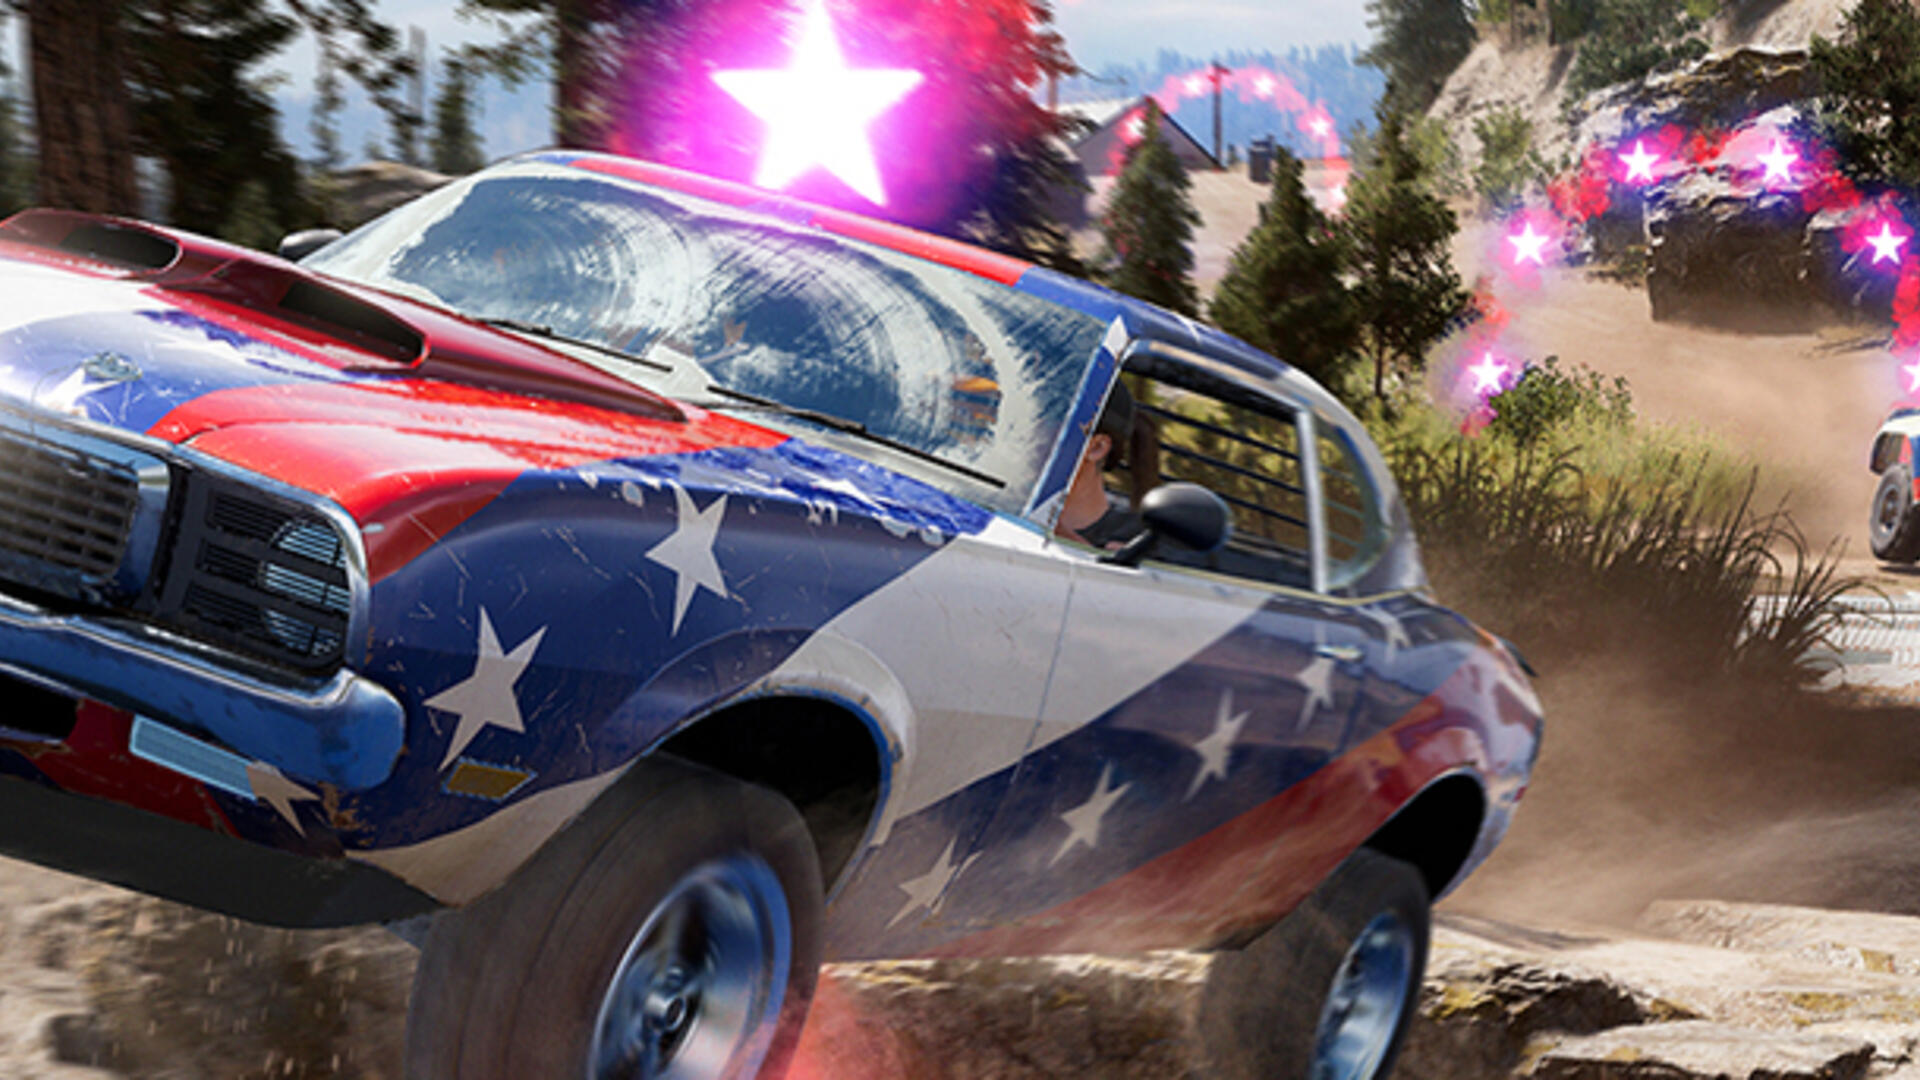 Far Cry 5's Creative Director: 'Powerful Imagery and Wacky Fun Can Live Together'